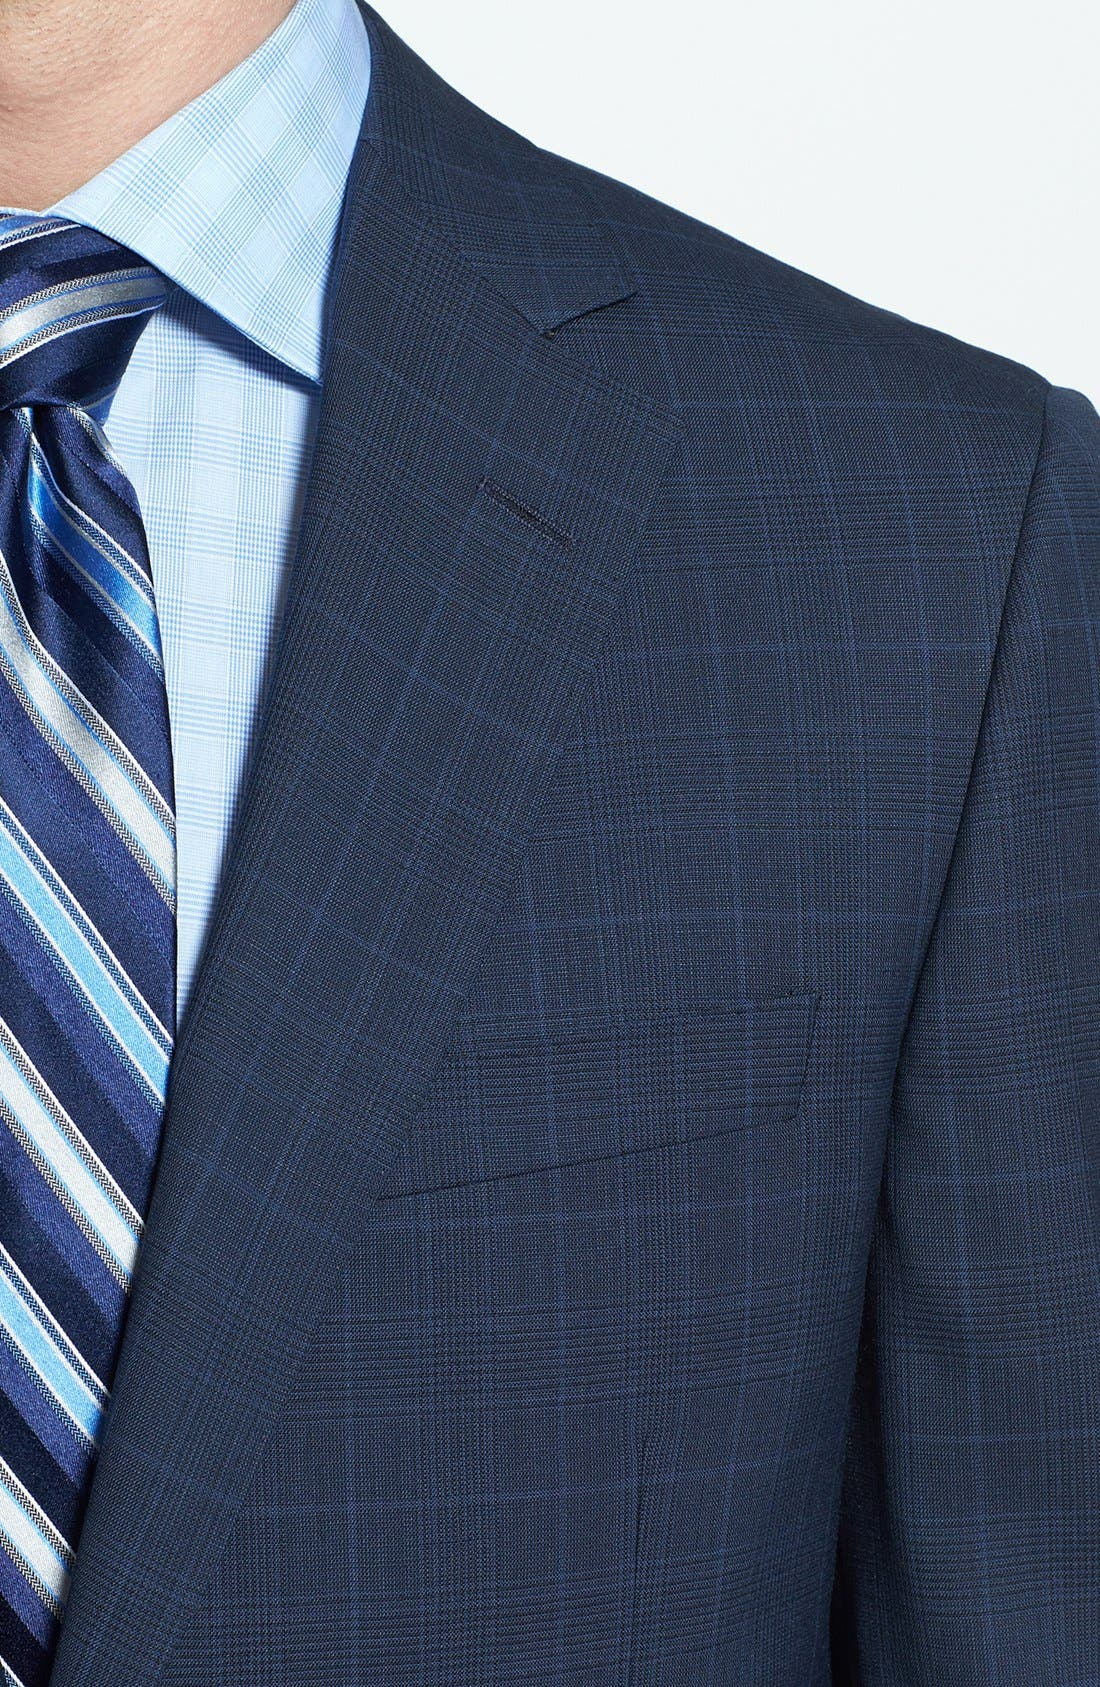 Alternate Image 5  - Samuelsohn Classic Fit Plaid Suit